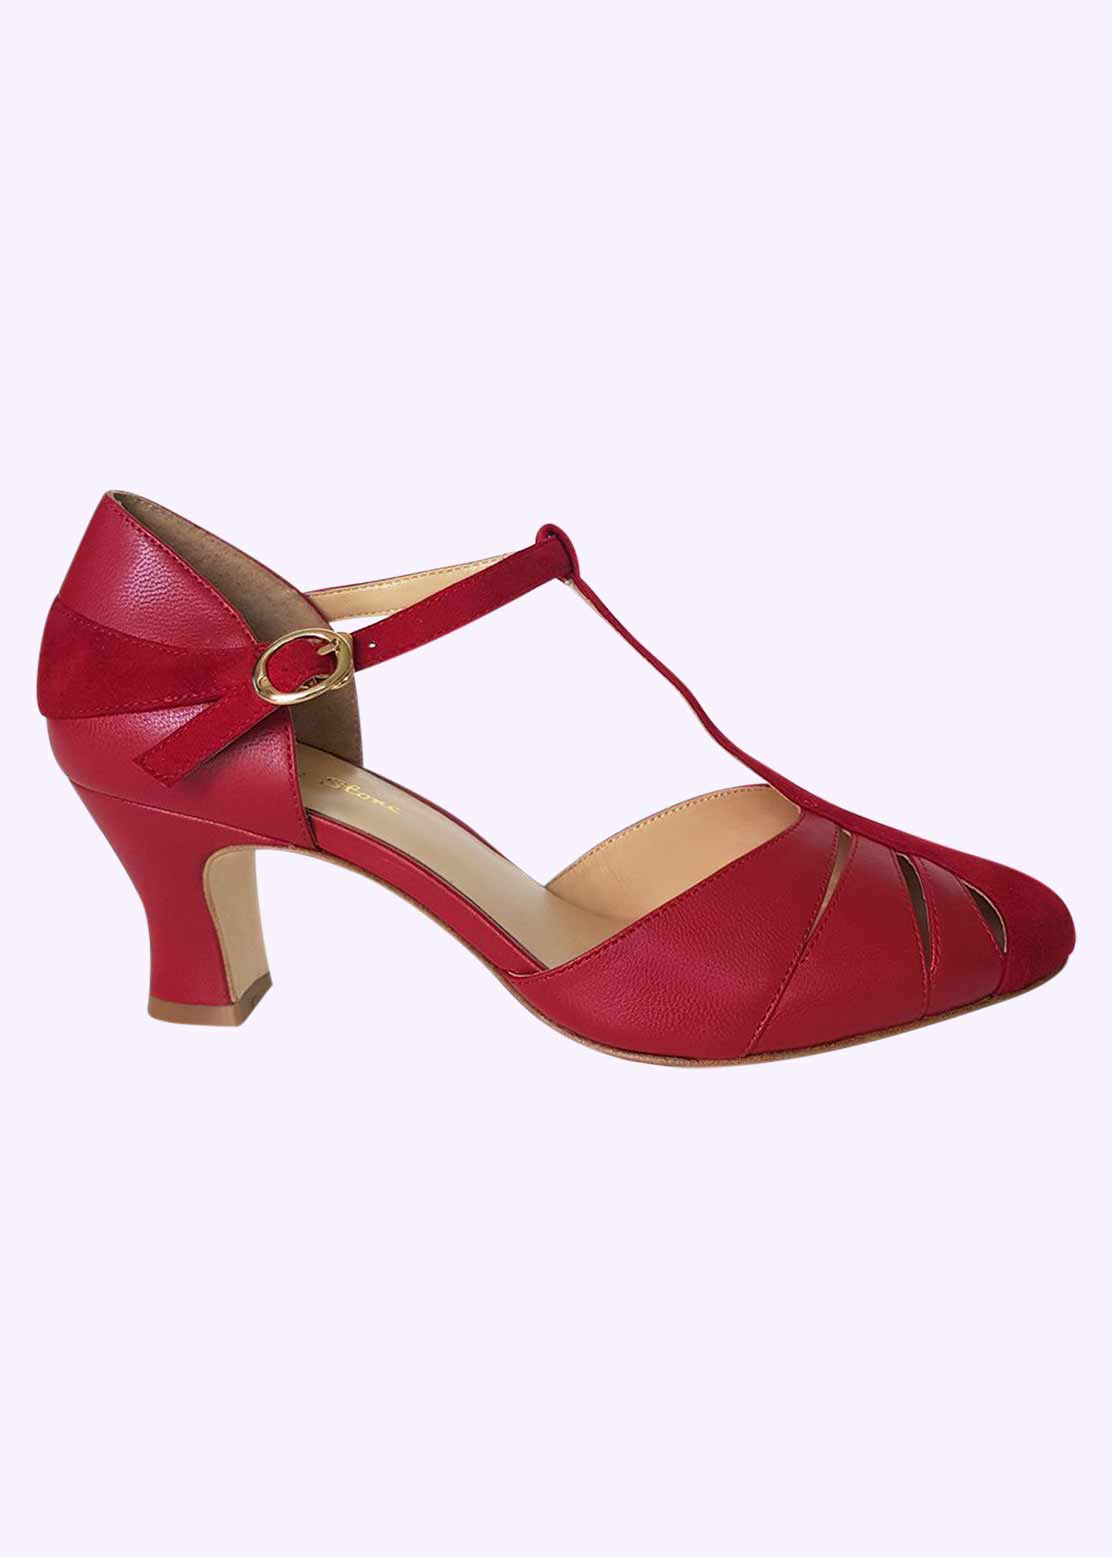 Charlie Stone shoes in red for Valentines